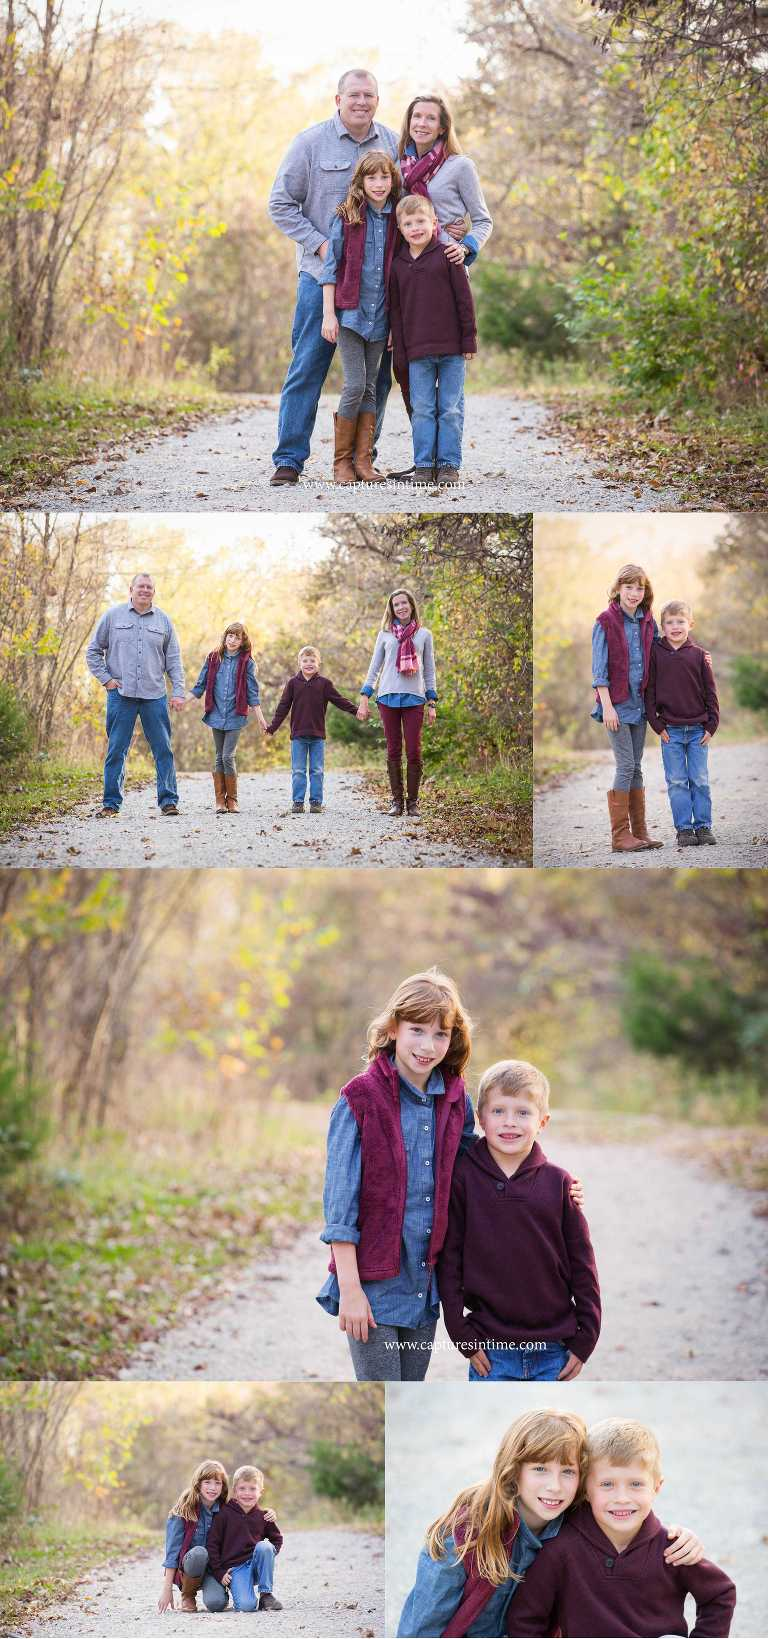 Fall Family Photography at Burr Oaks